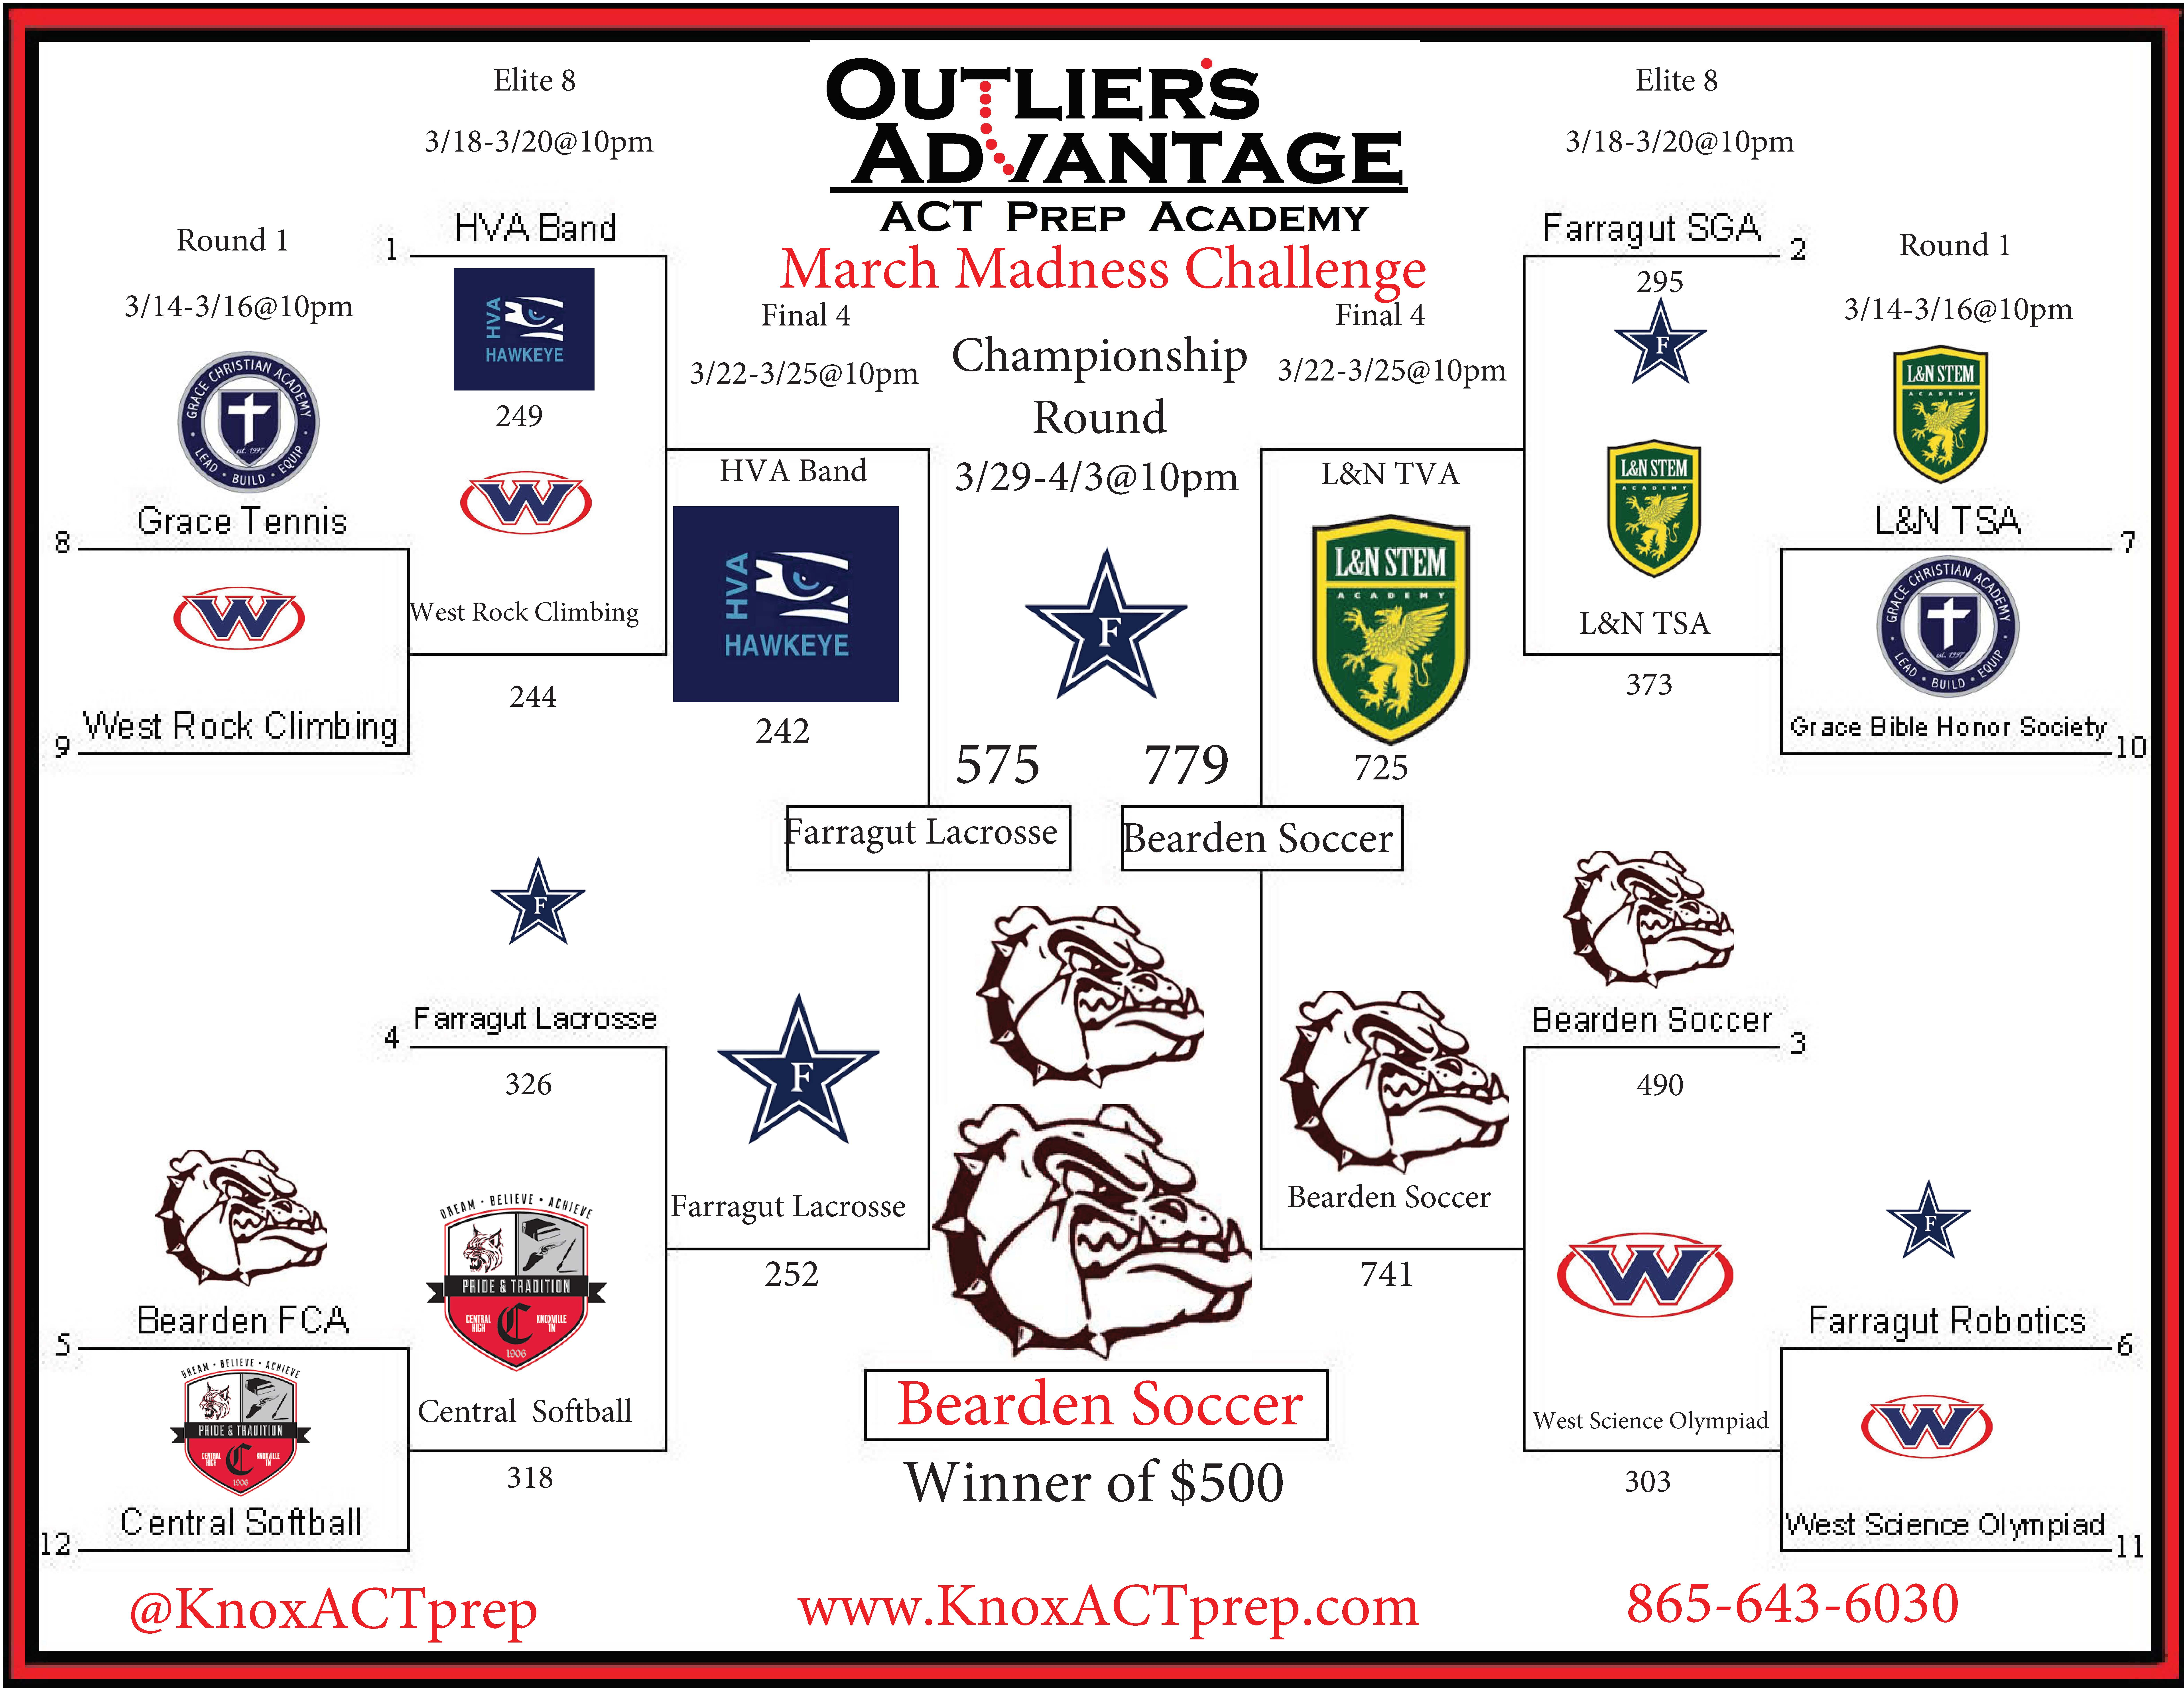 Outliers Advantage Bracket Championship round